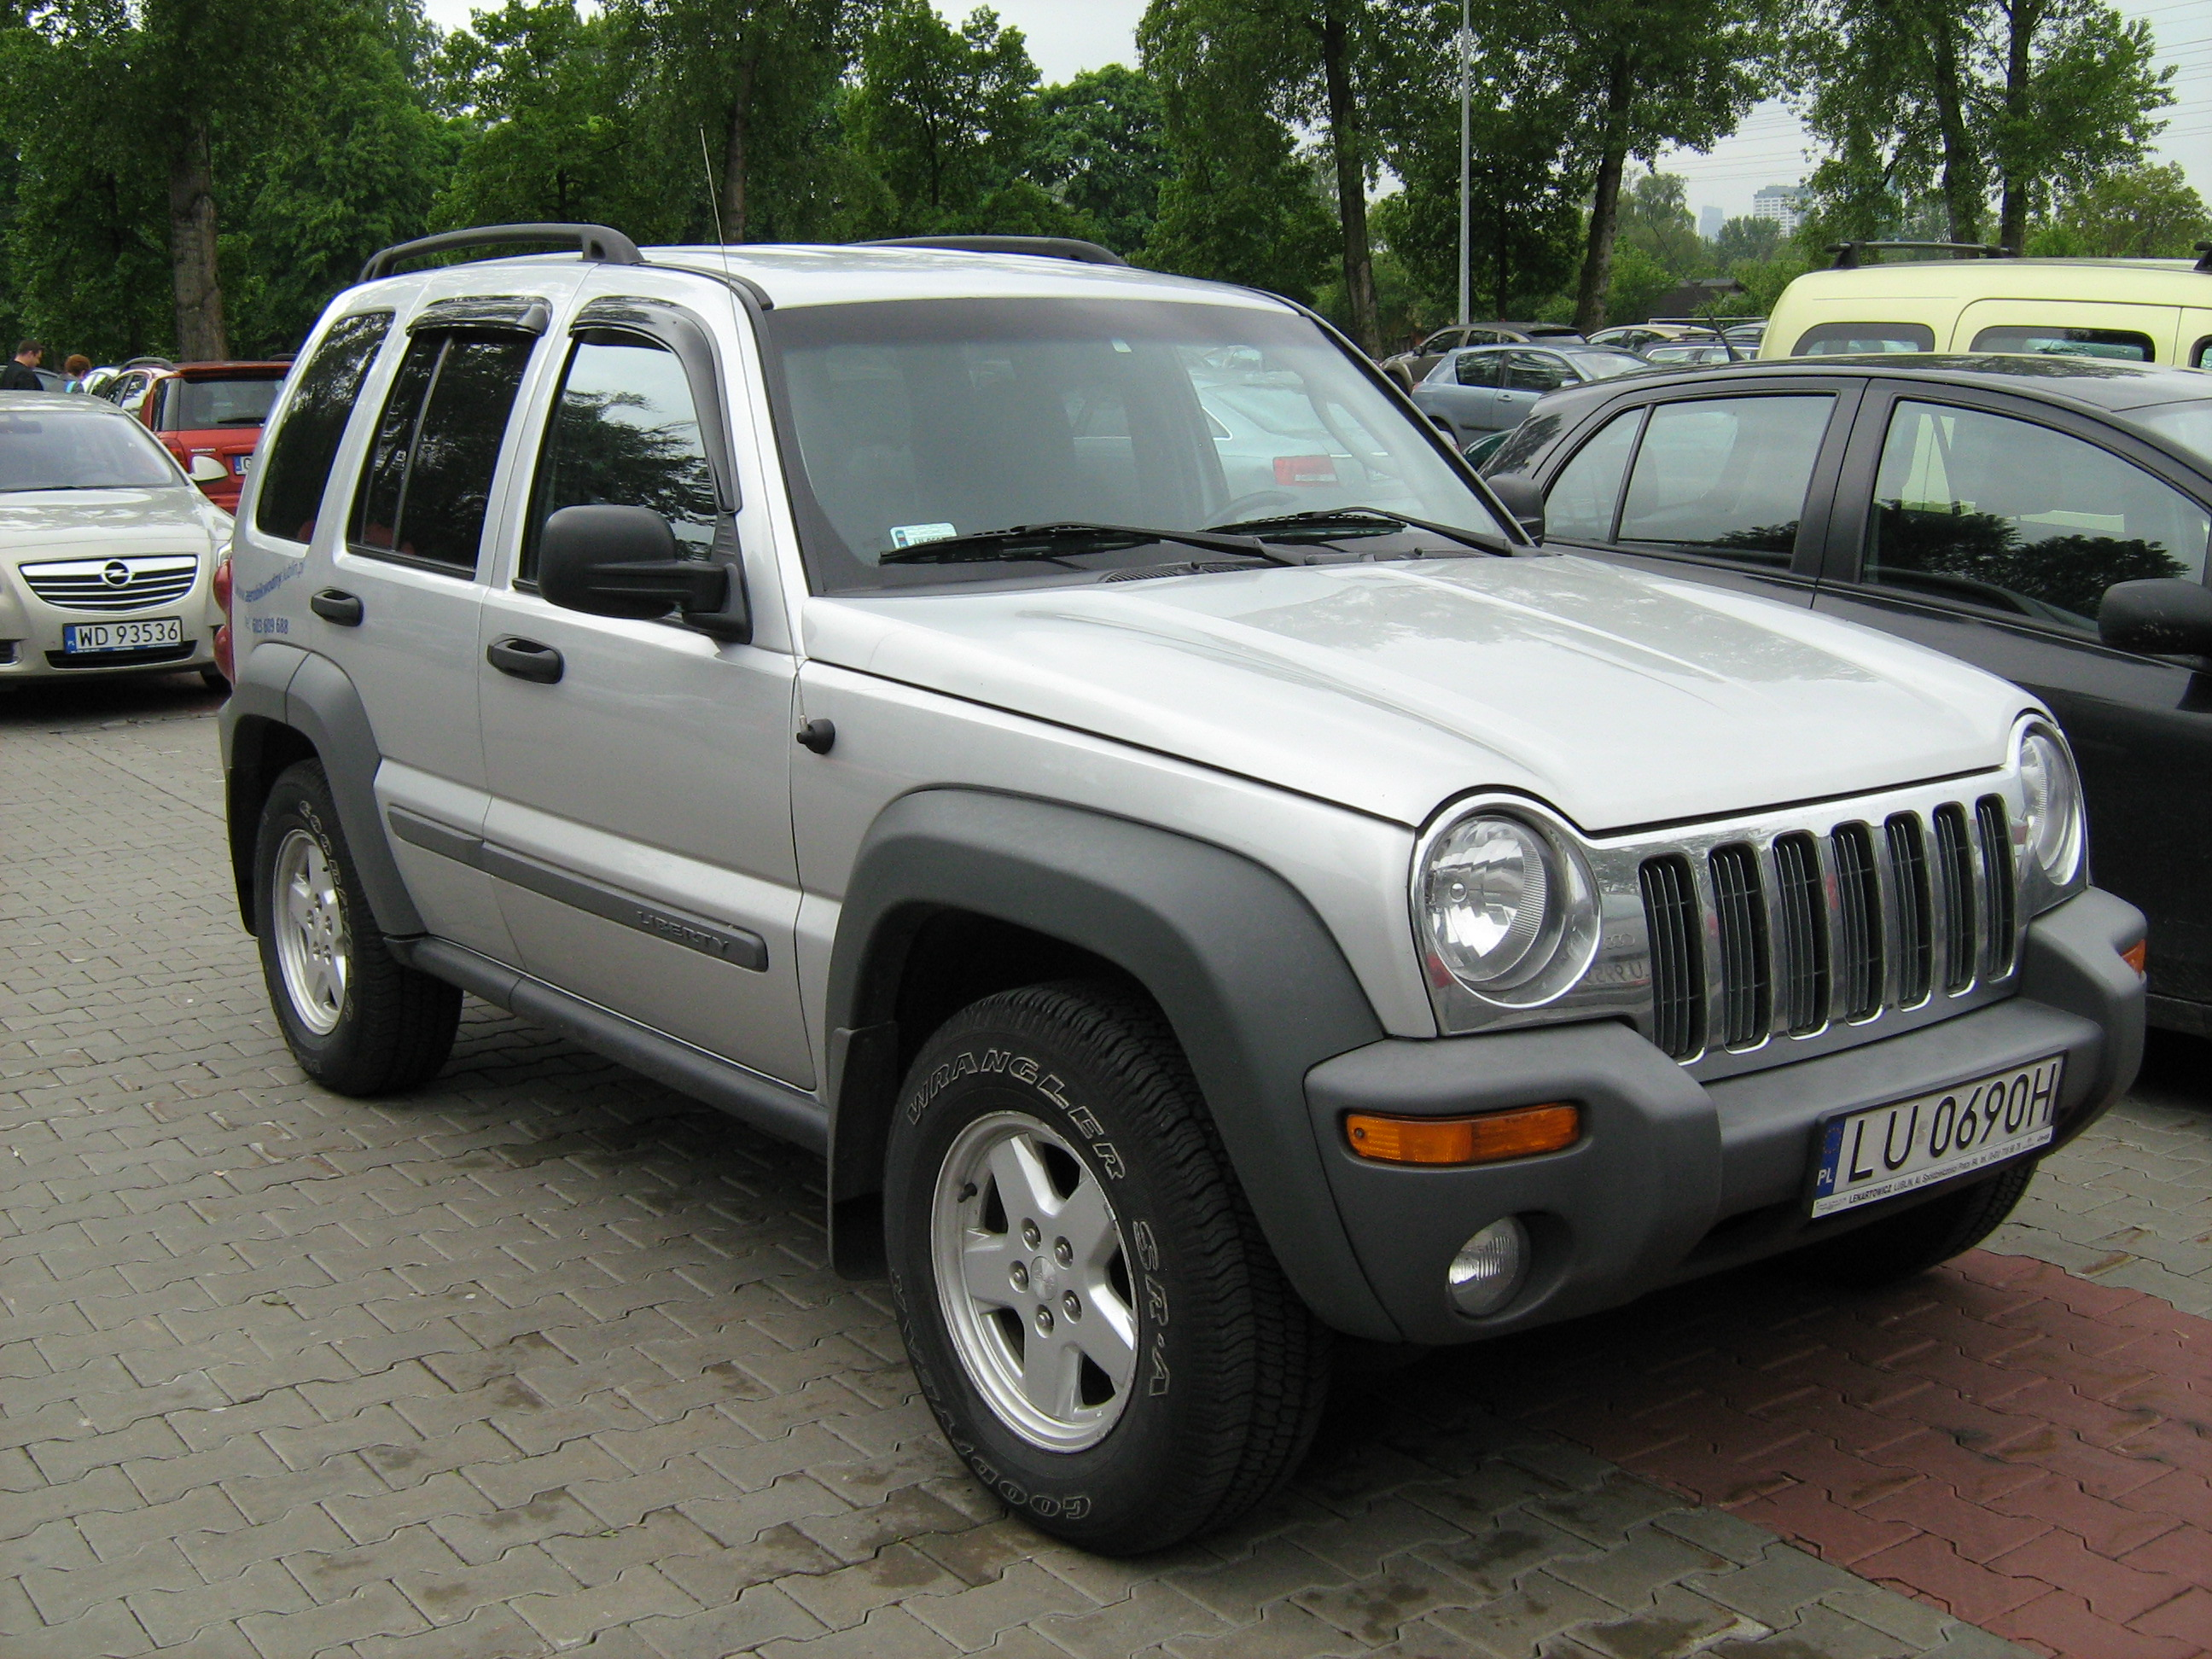 file 2001 2004 jeep liberty silver in poland. Black Bedroom Furniture Sets. Home Design Ideas